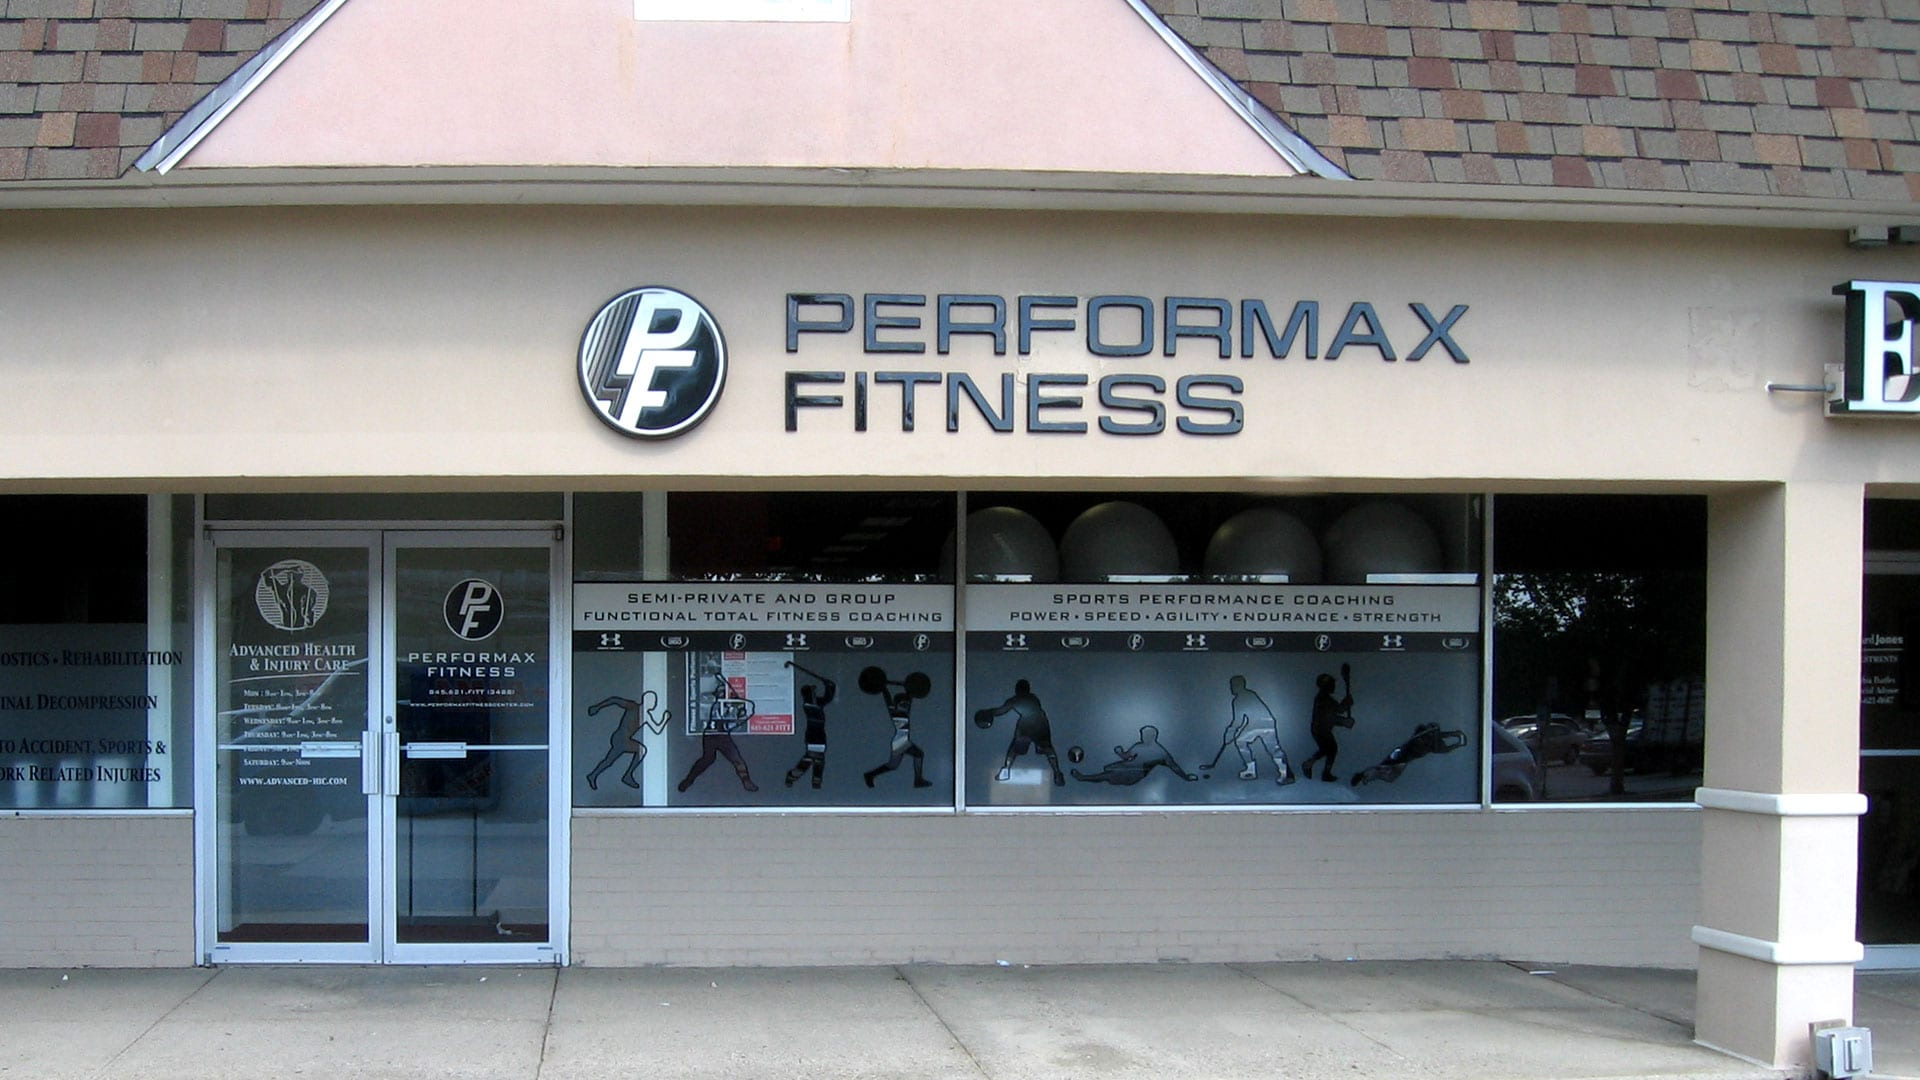 Performax Fitness Exterior Wall Sign